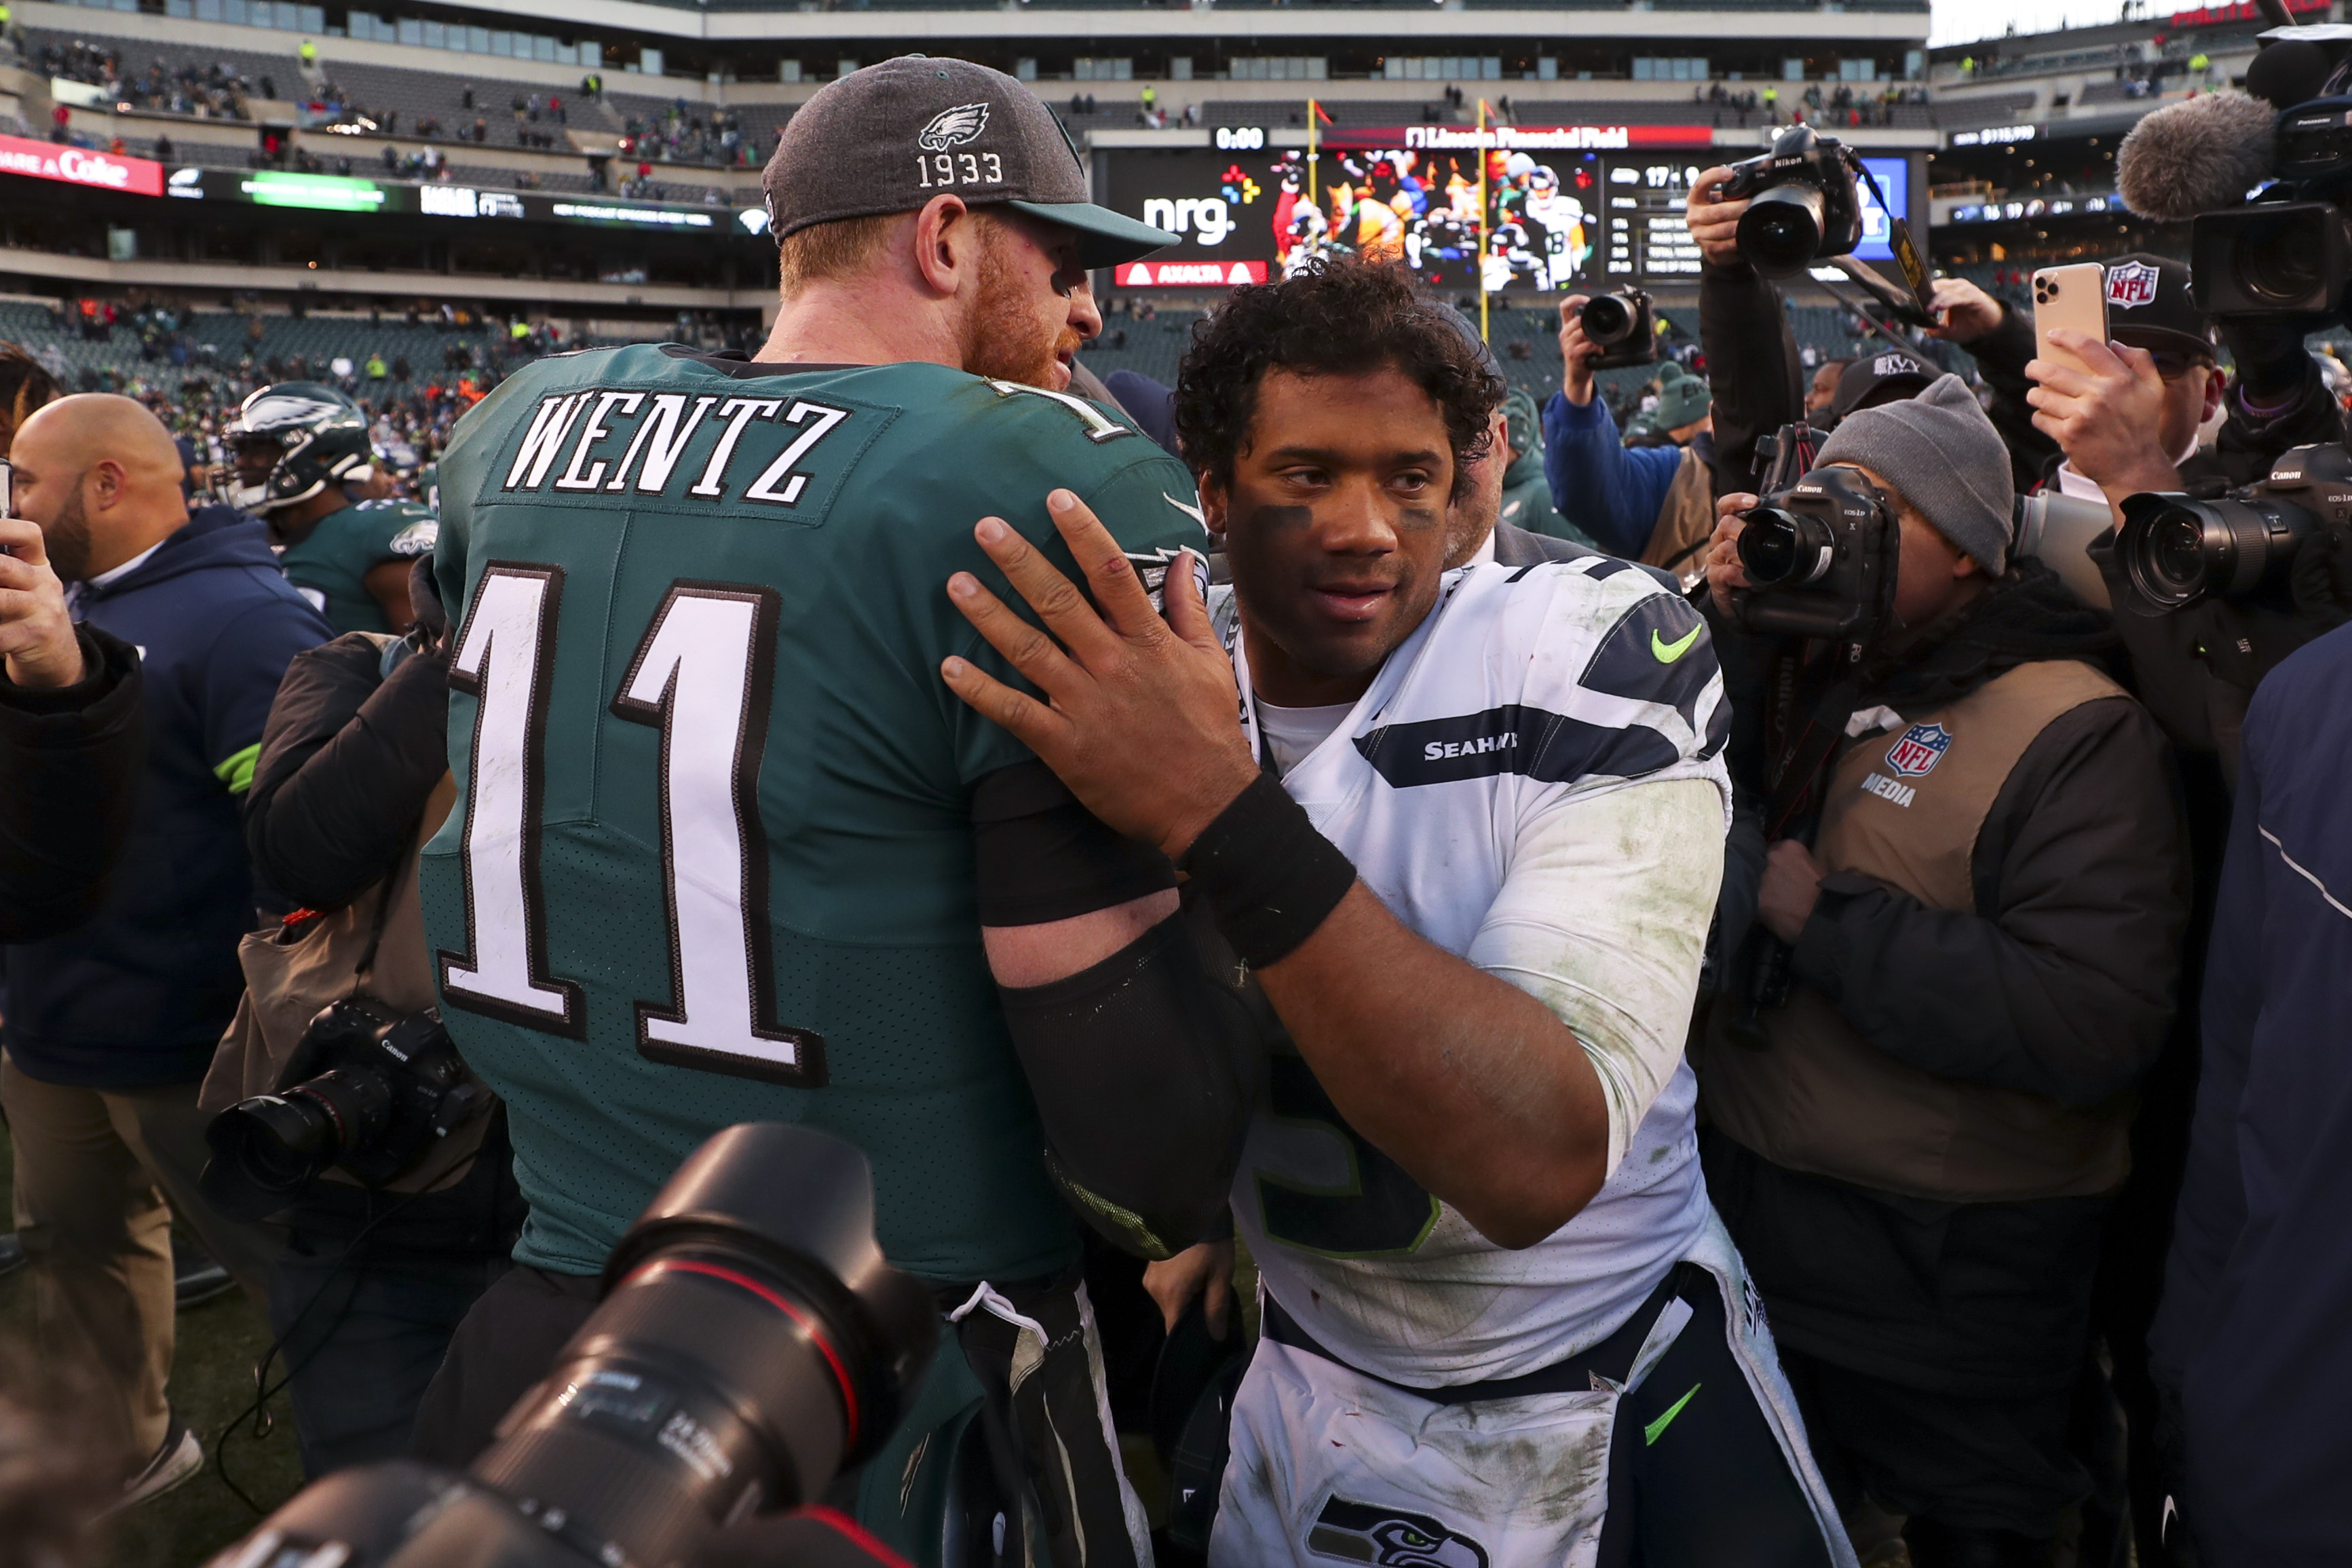 Russell Wilson #3 of the Seattle Seahawks hugs Carson Wentz #11 of the Philadelphia Eagles after the game at Lincoln Financial Field on November 24, 2019 in Philadelphia, Pennsylvania.